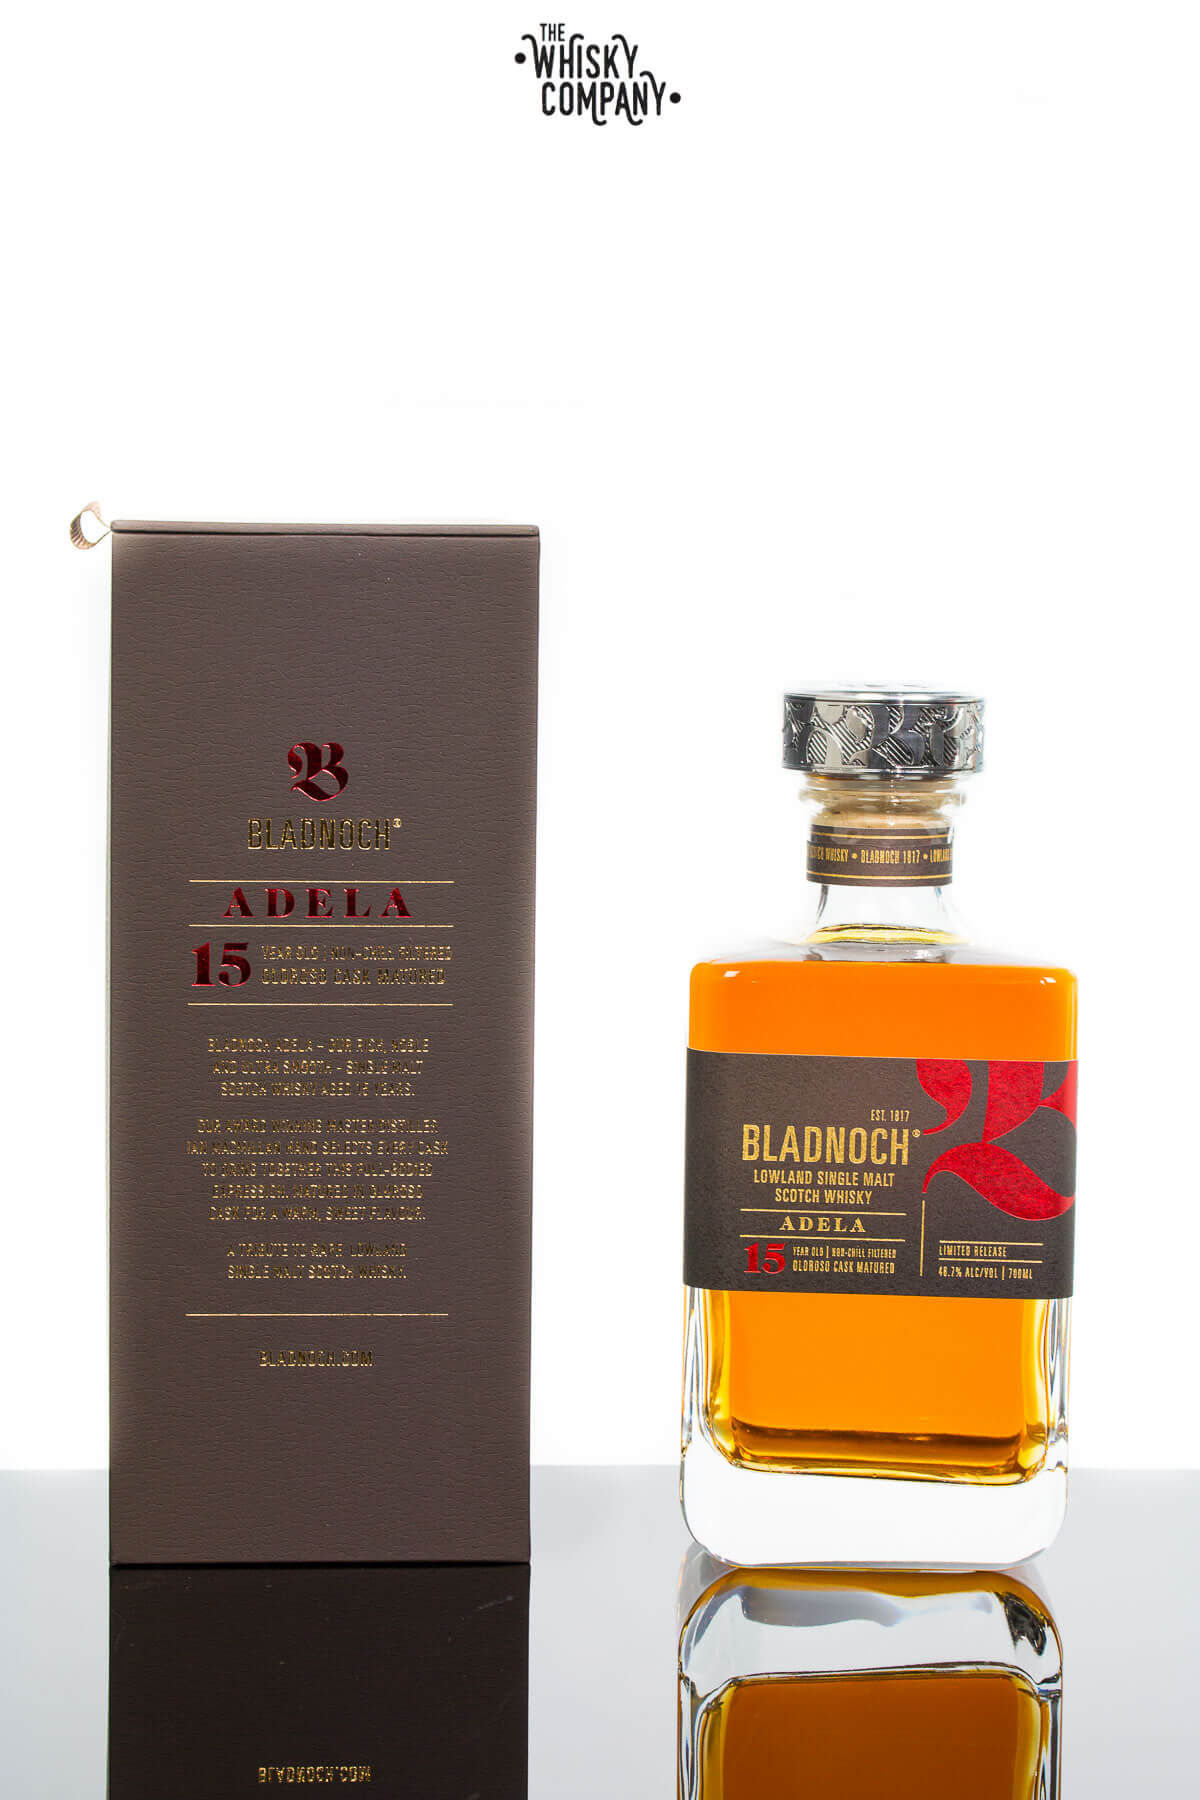 Bladnoch Adela 15 Years Old Lowland Single Malt Scotch Whisky (700ml)